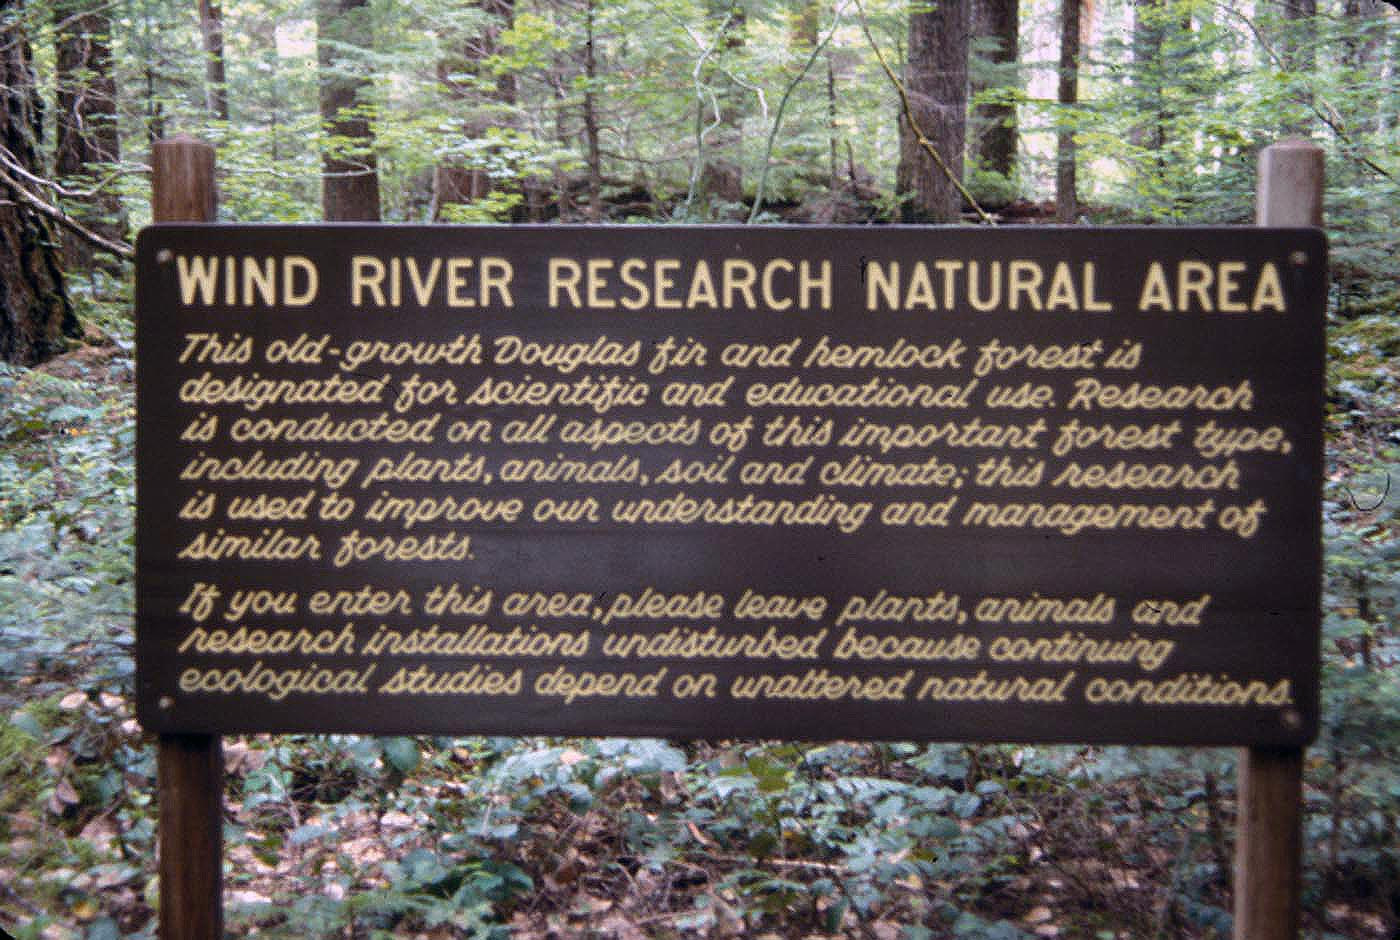 - Fig. 2. Hardrock mining in research natural areas, such as this one (now named the Thornton T. Munger RNA) on the Gifford Pinchot National Forest, Washington, needs to be statutorily banned. (Perhaps one of the research projects is how well cursive writing works carved into outdoor interpretive signs.) Source: USDA Forest Service.